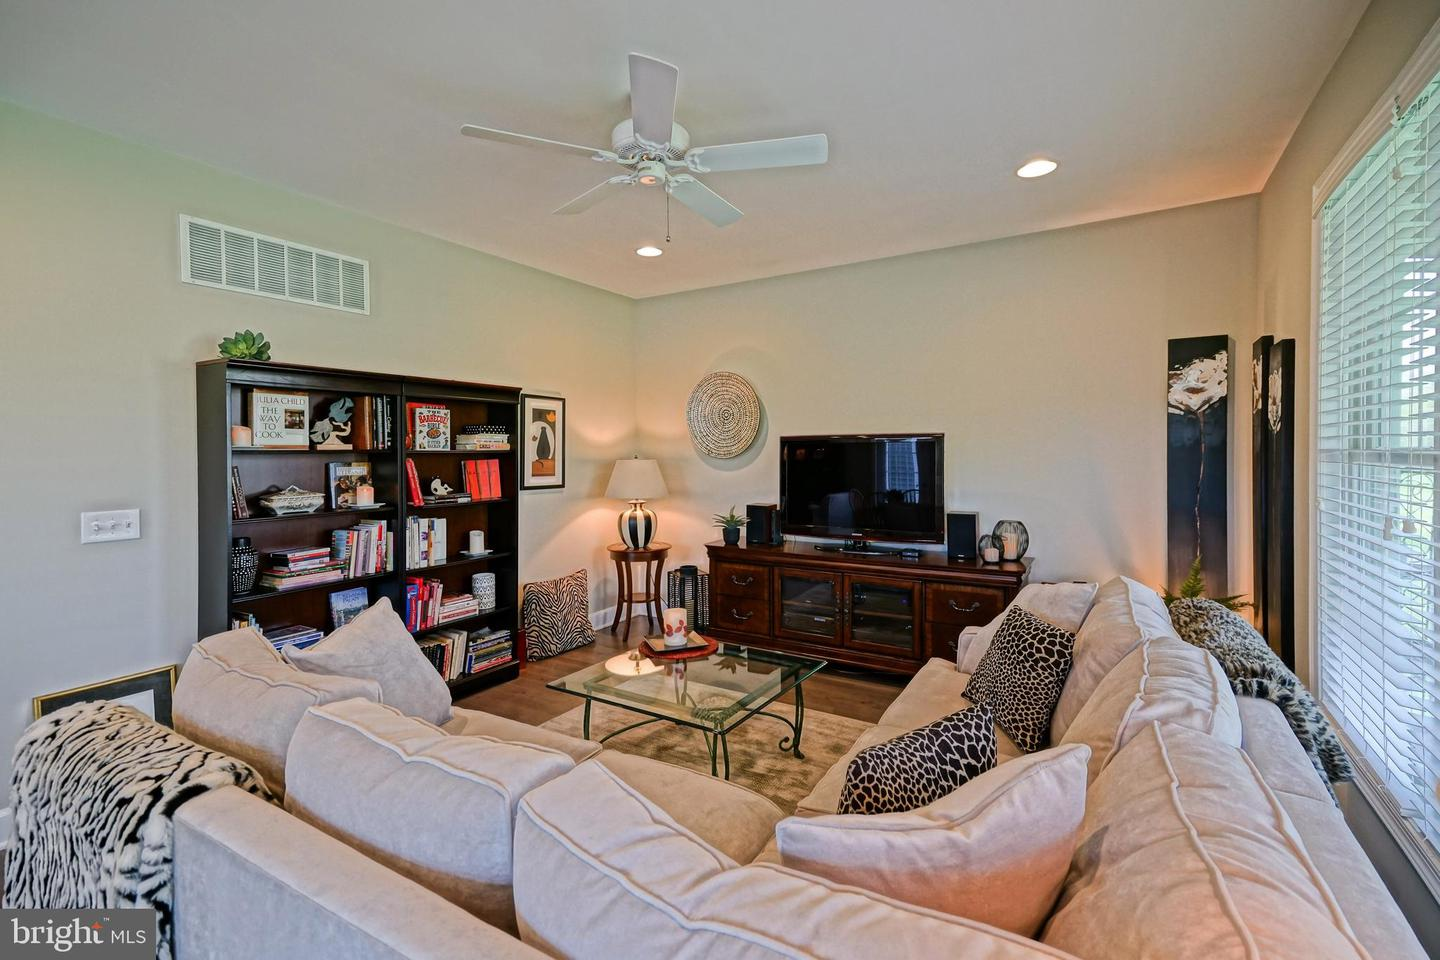 DESU139128-301667381908-2019-08-05-10-43-56 35222 Overfalls Dr N | Lewes, DE Real Estate For Sale | MLS# Desu139128  - Lee Ann Group